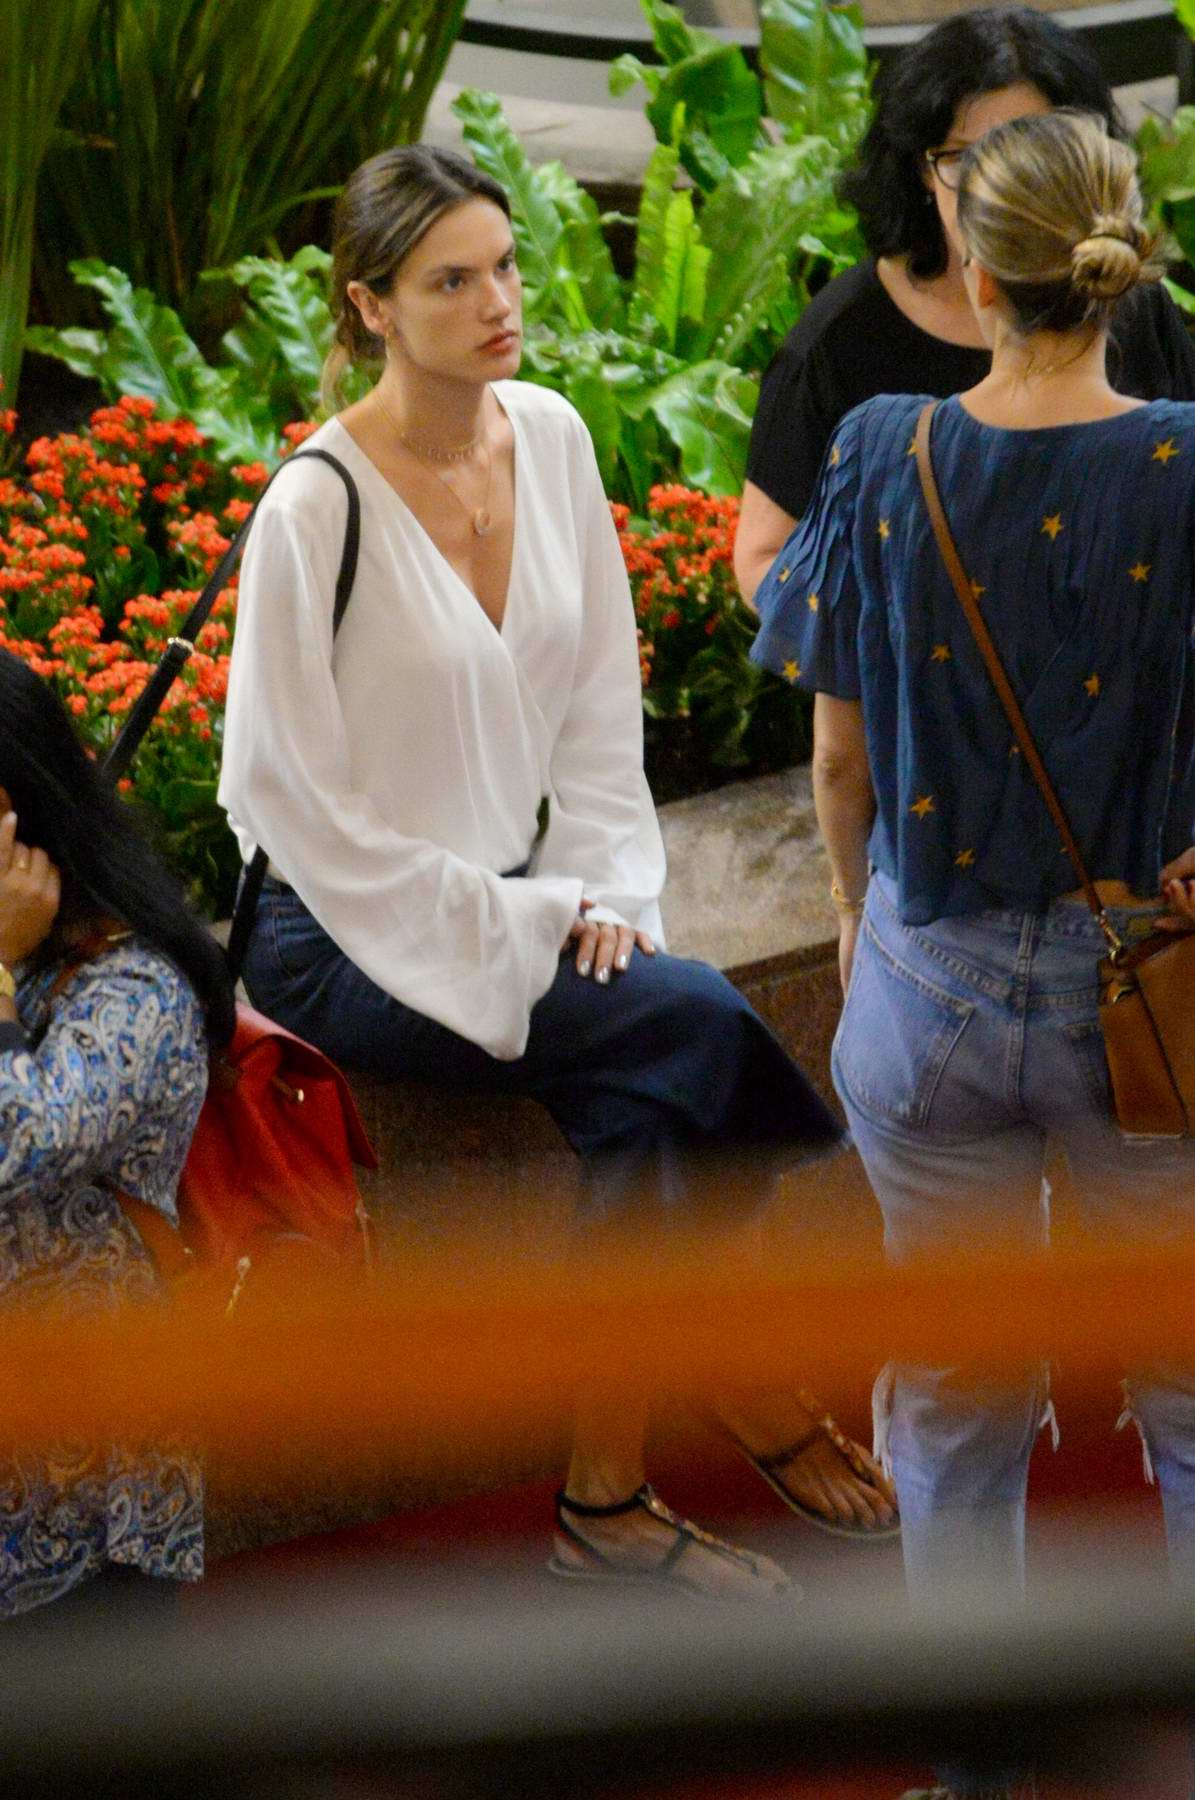 Alessandra Ambrosio goes shopping with family on holiday in Florianopolis, Brazil